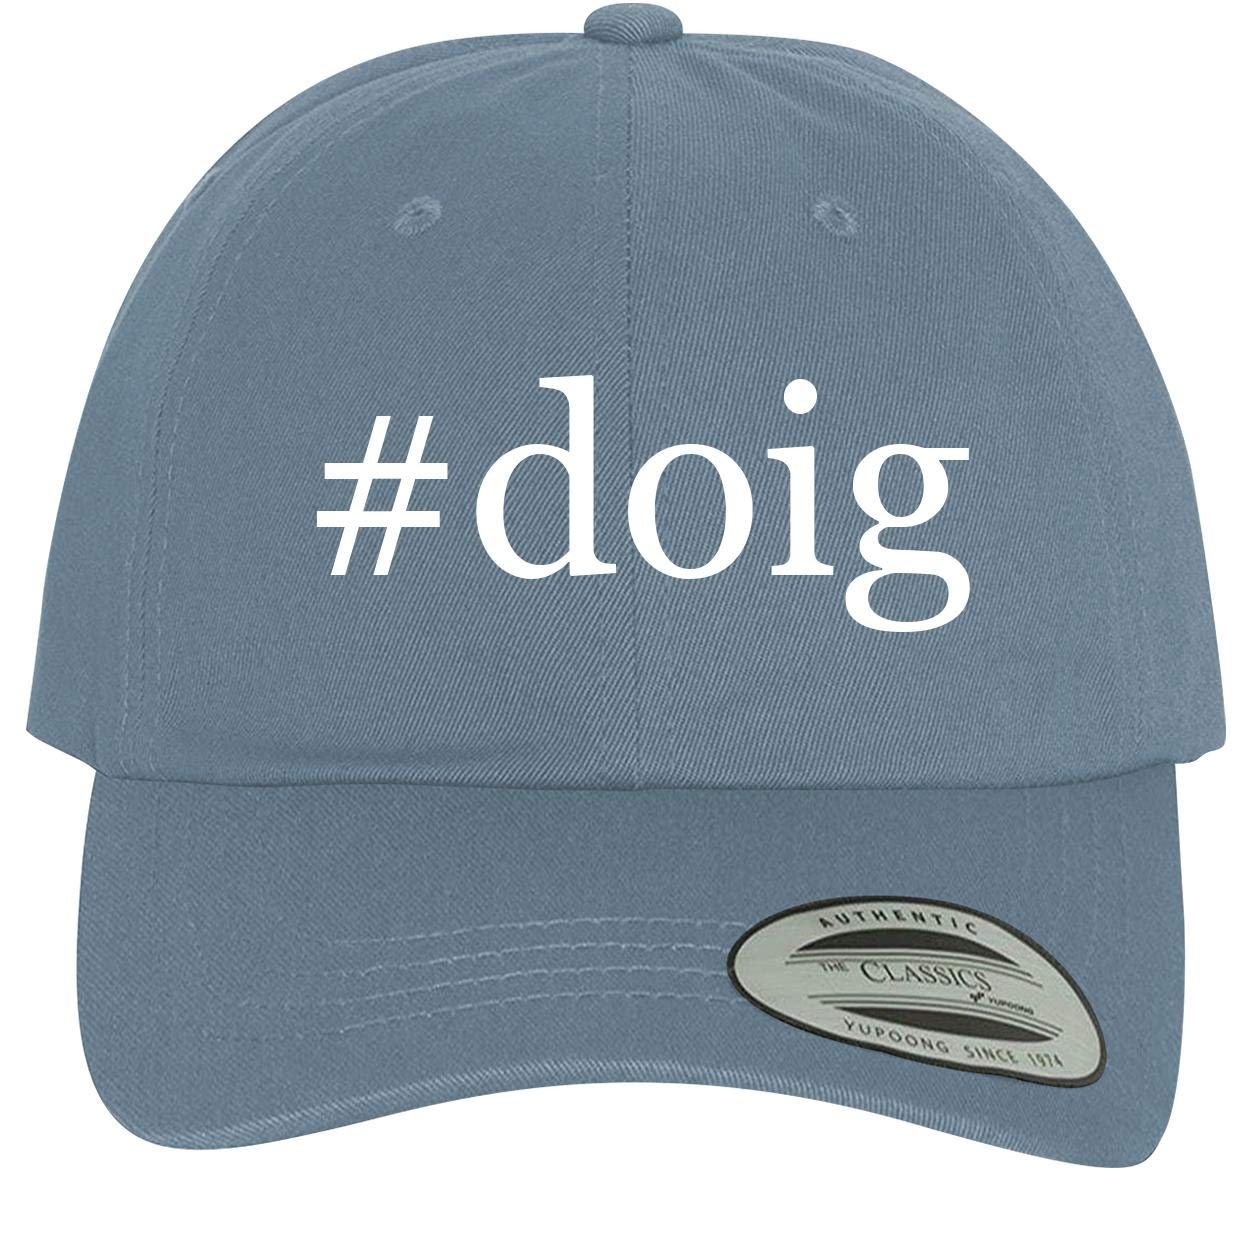 Comfortable Dad Hat Baseball Cap BH Cool Designs #Doig